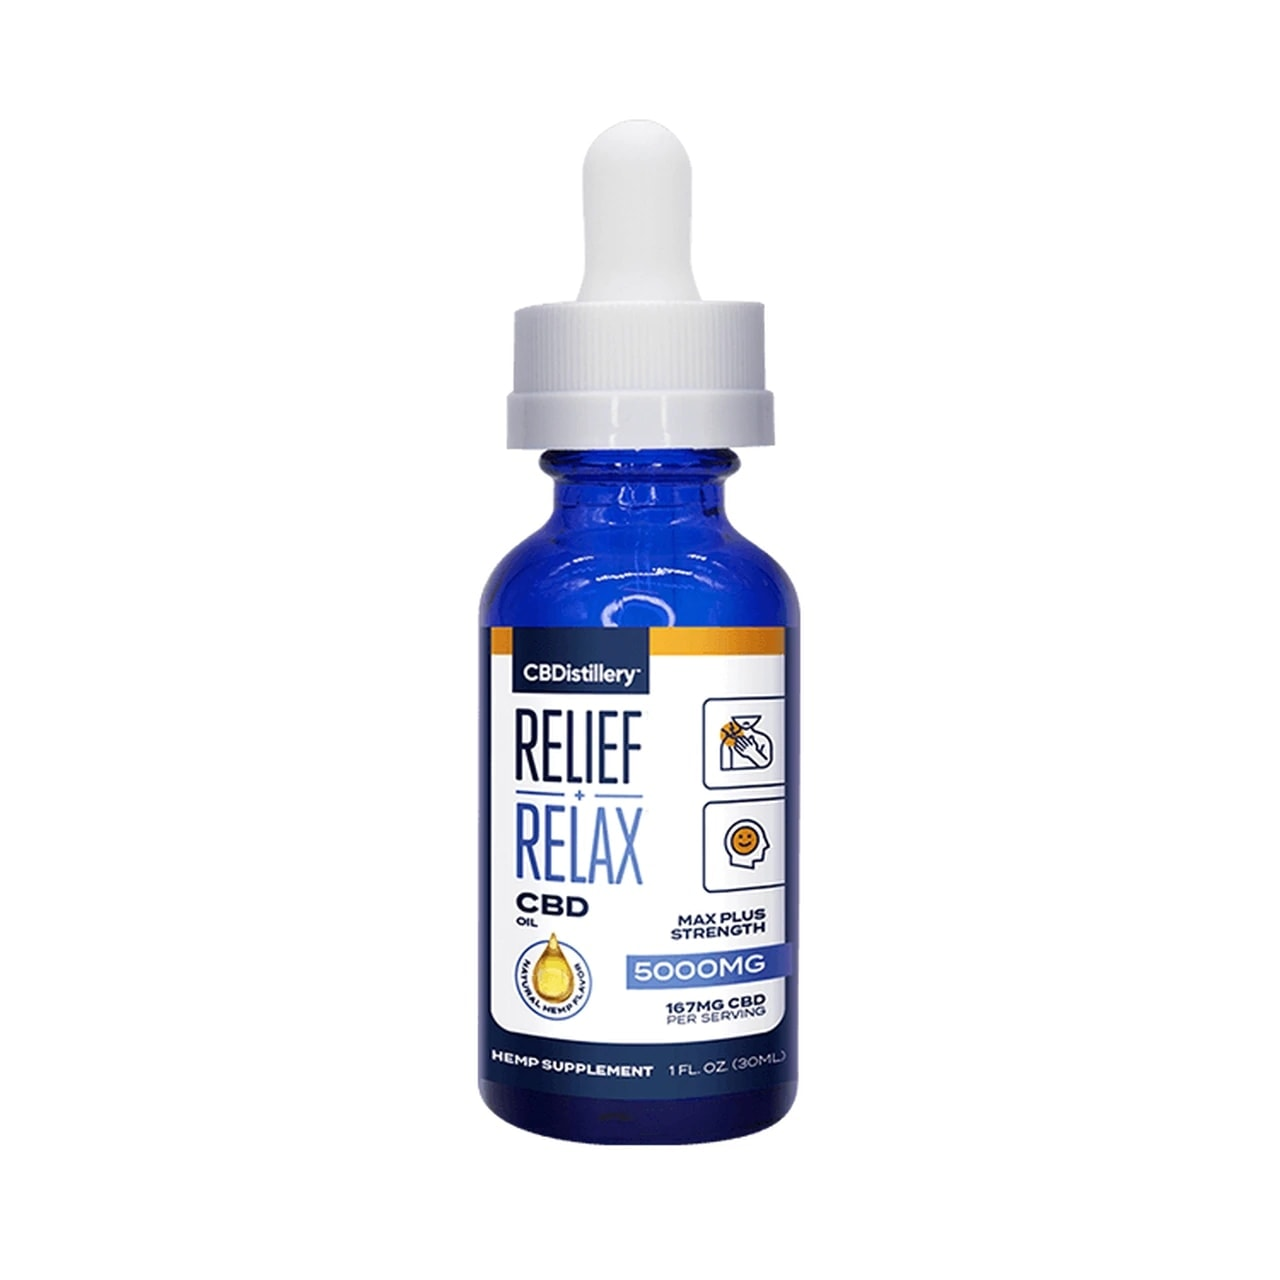 CBDistillery, CBD Oil, Full Spectrum, 1oz, 5000mg of CBD01